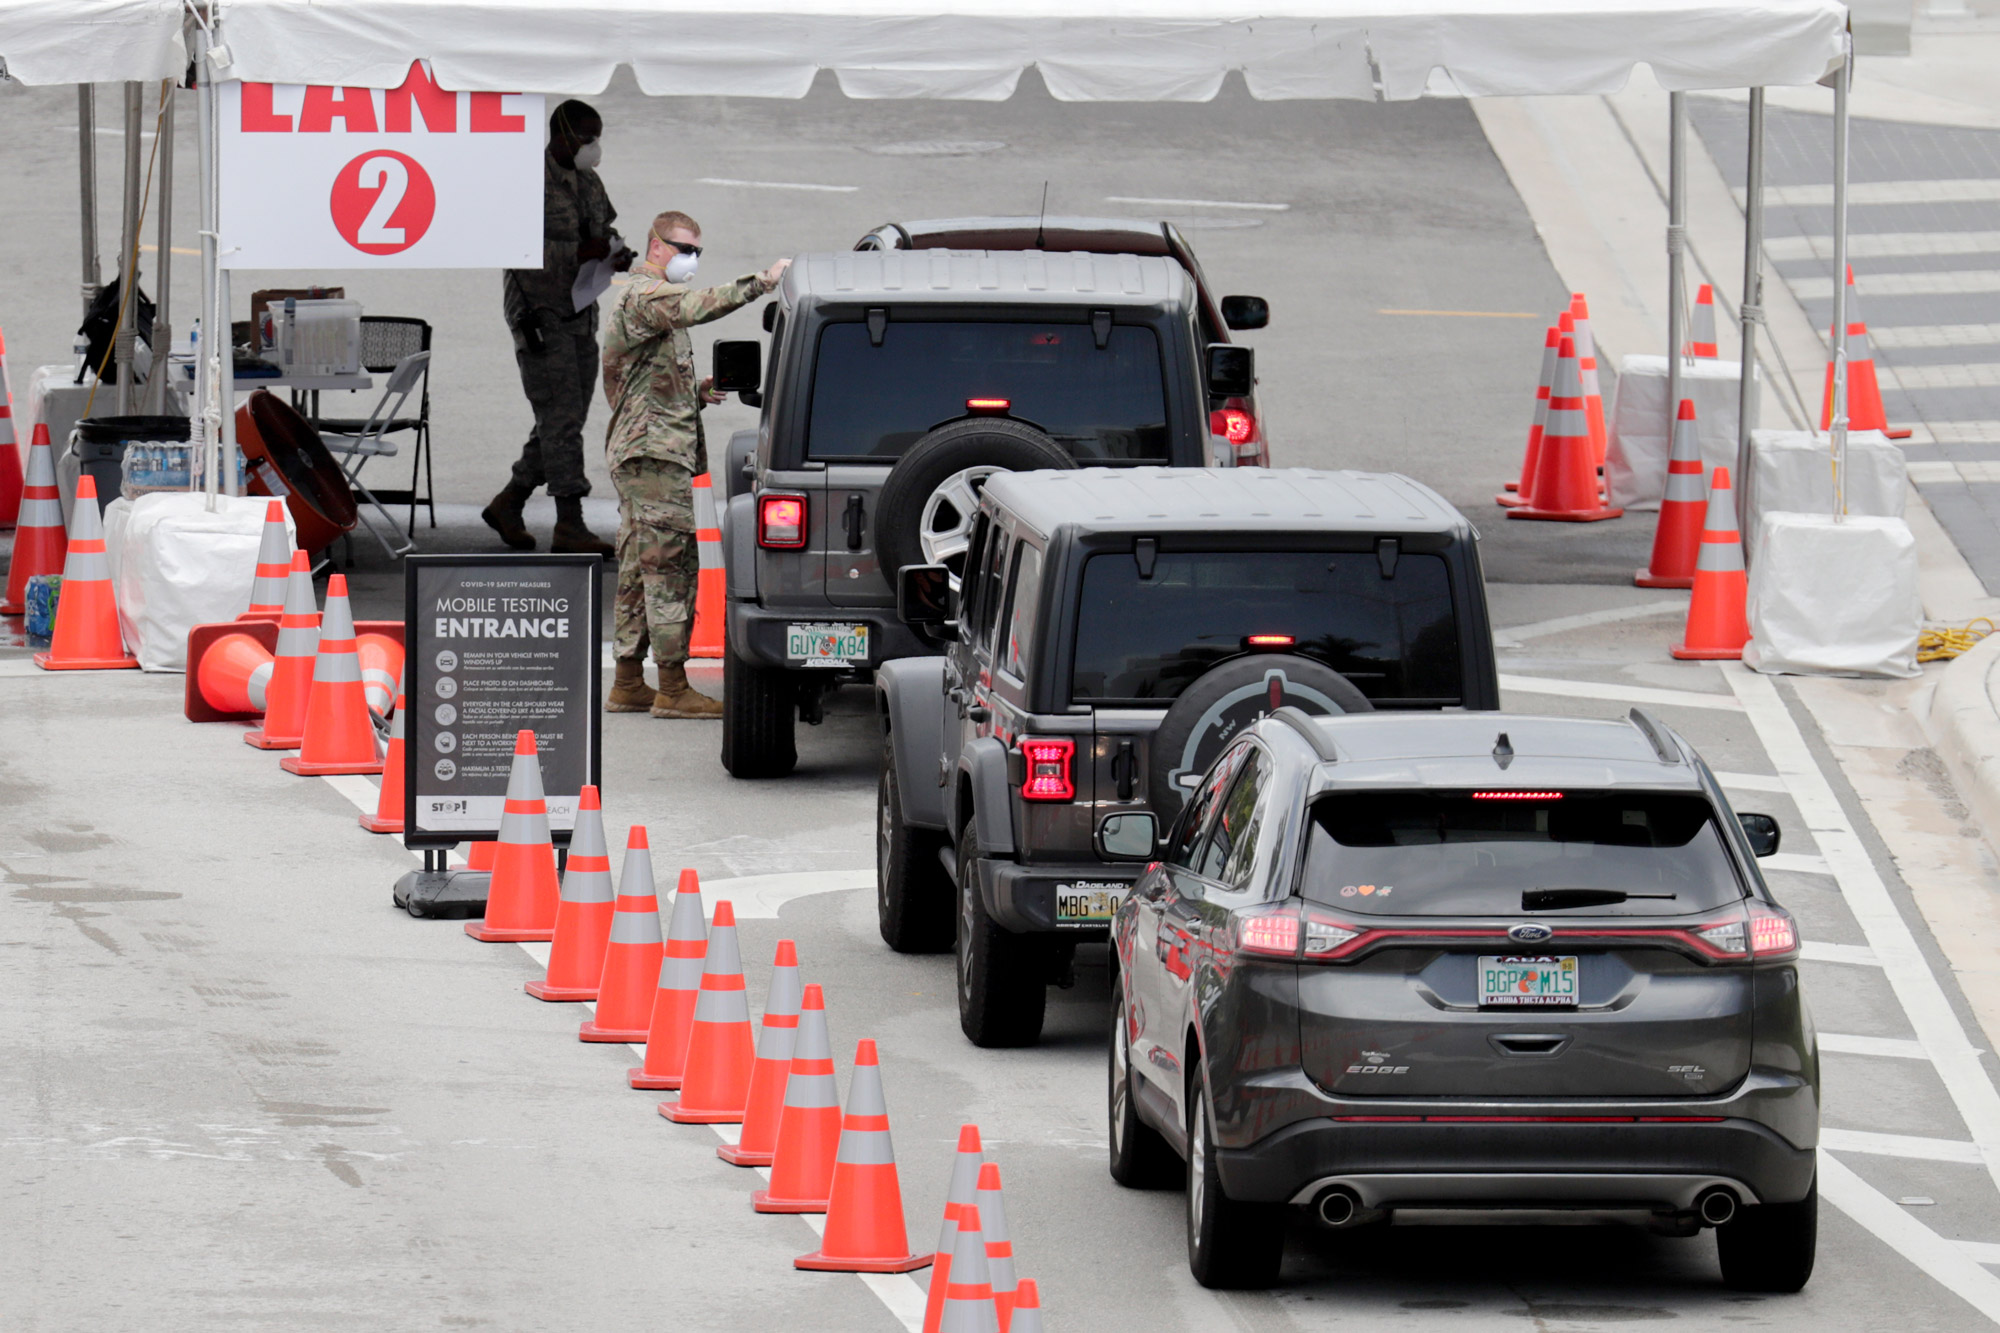 A member of the Florida National Guard directs vehicles at a COVID-19 testing site at the Miami Beach Convention Center on July 12 in Miami Beach, Florida.